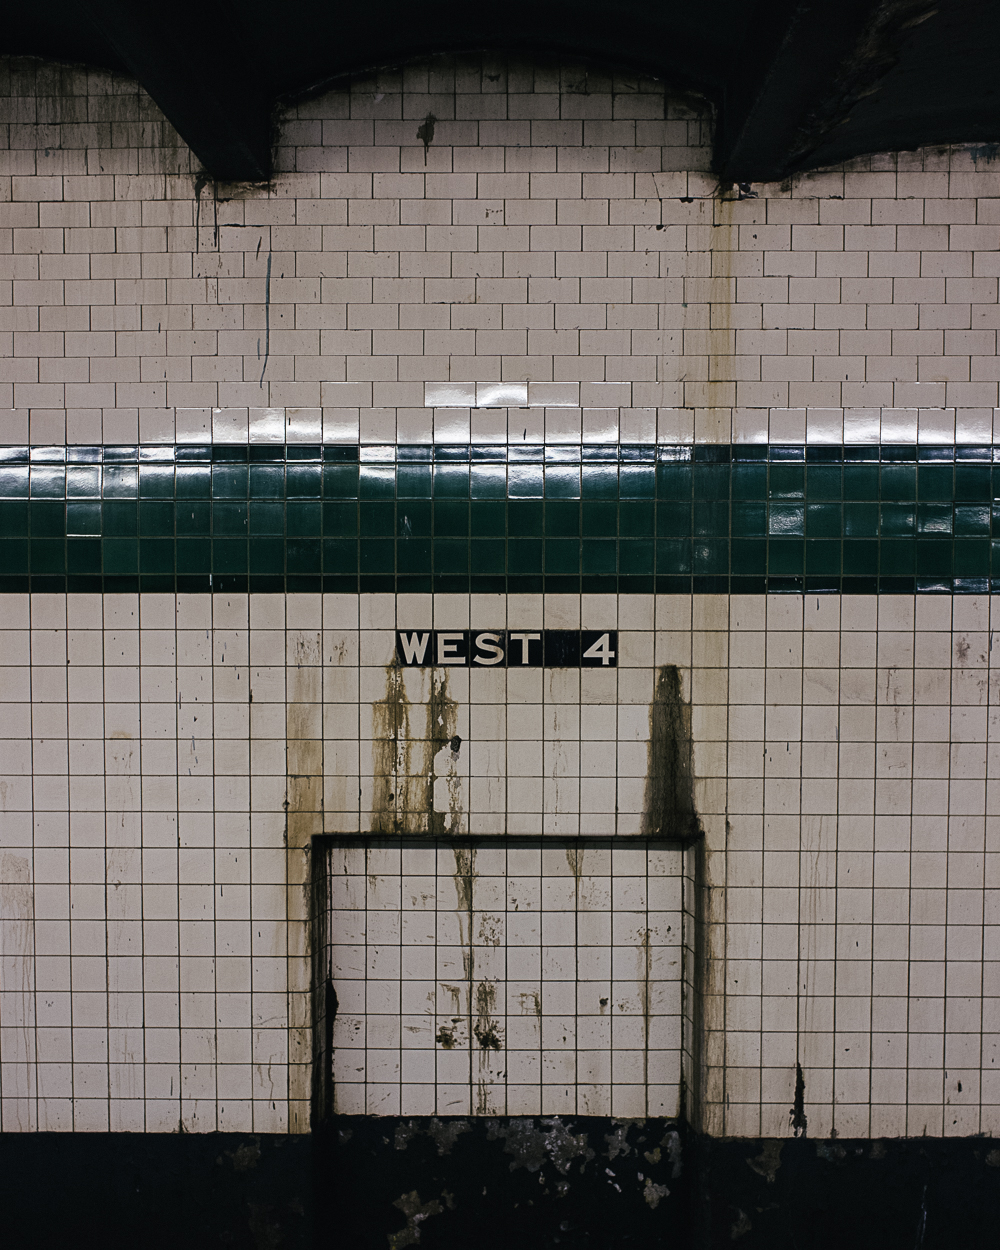 riding-together-subway-nyc-downtown-west-fourth.jpg